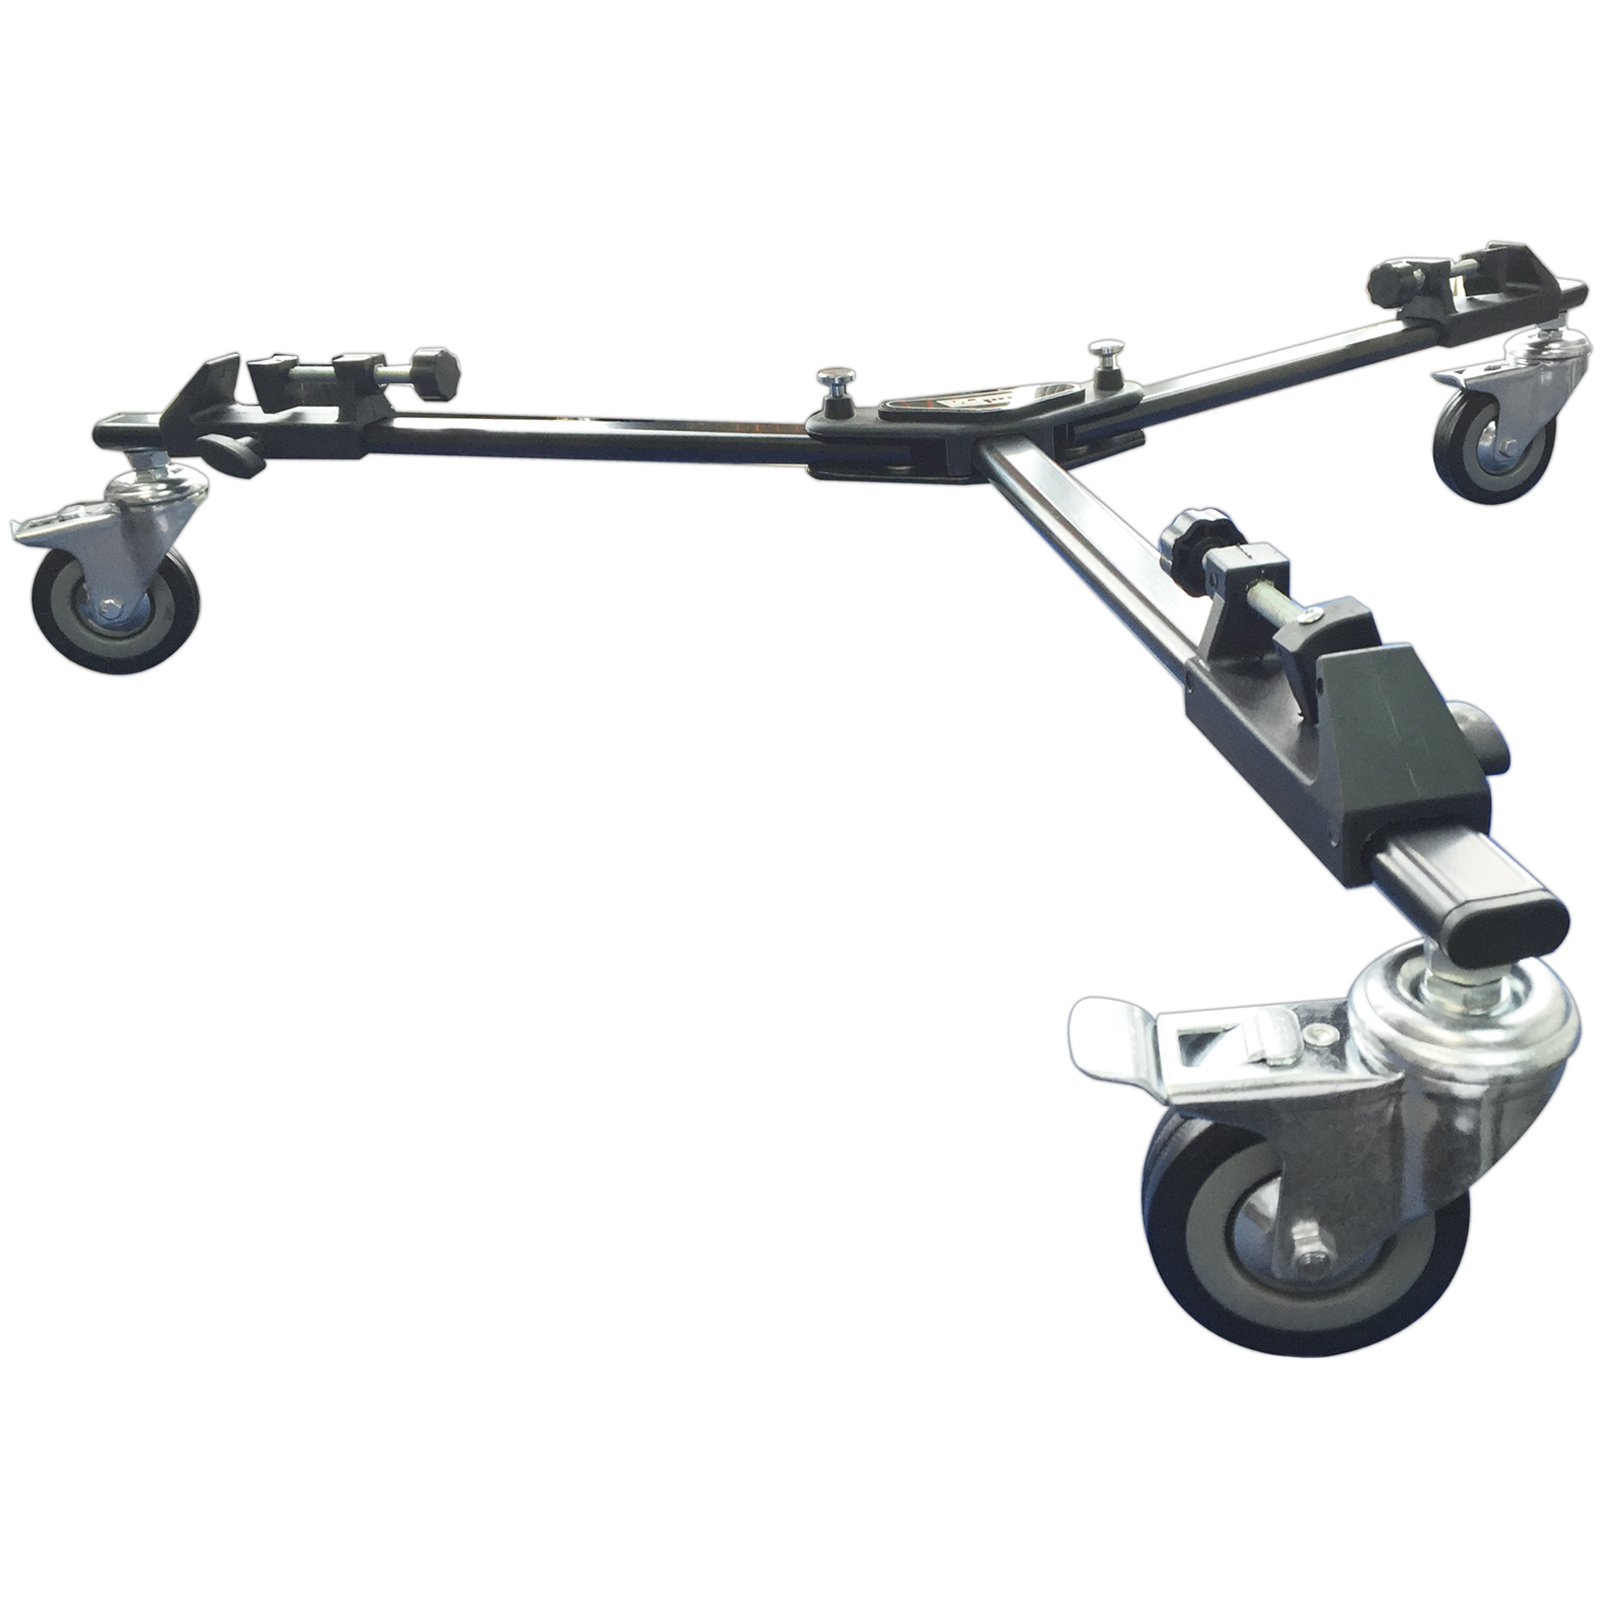 Vidpro PD-1 Professional Tripod Dolly Heavy-Duty with Locking Wheels and Carry Case by VipPro